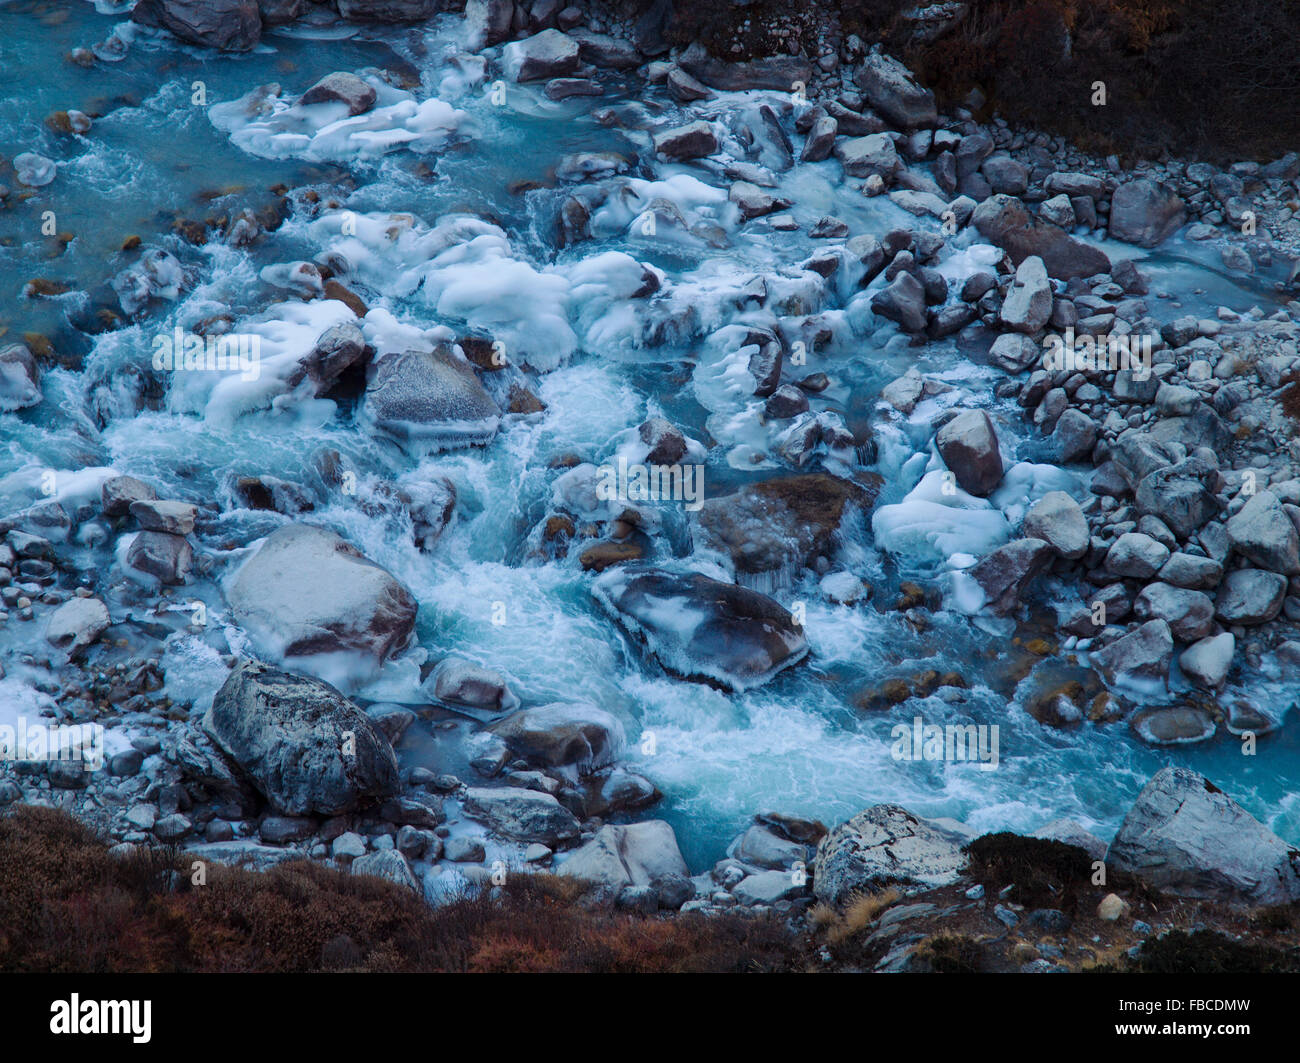 Frozen boulders in river, Khumbu region Nepal - Stock Image